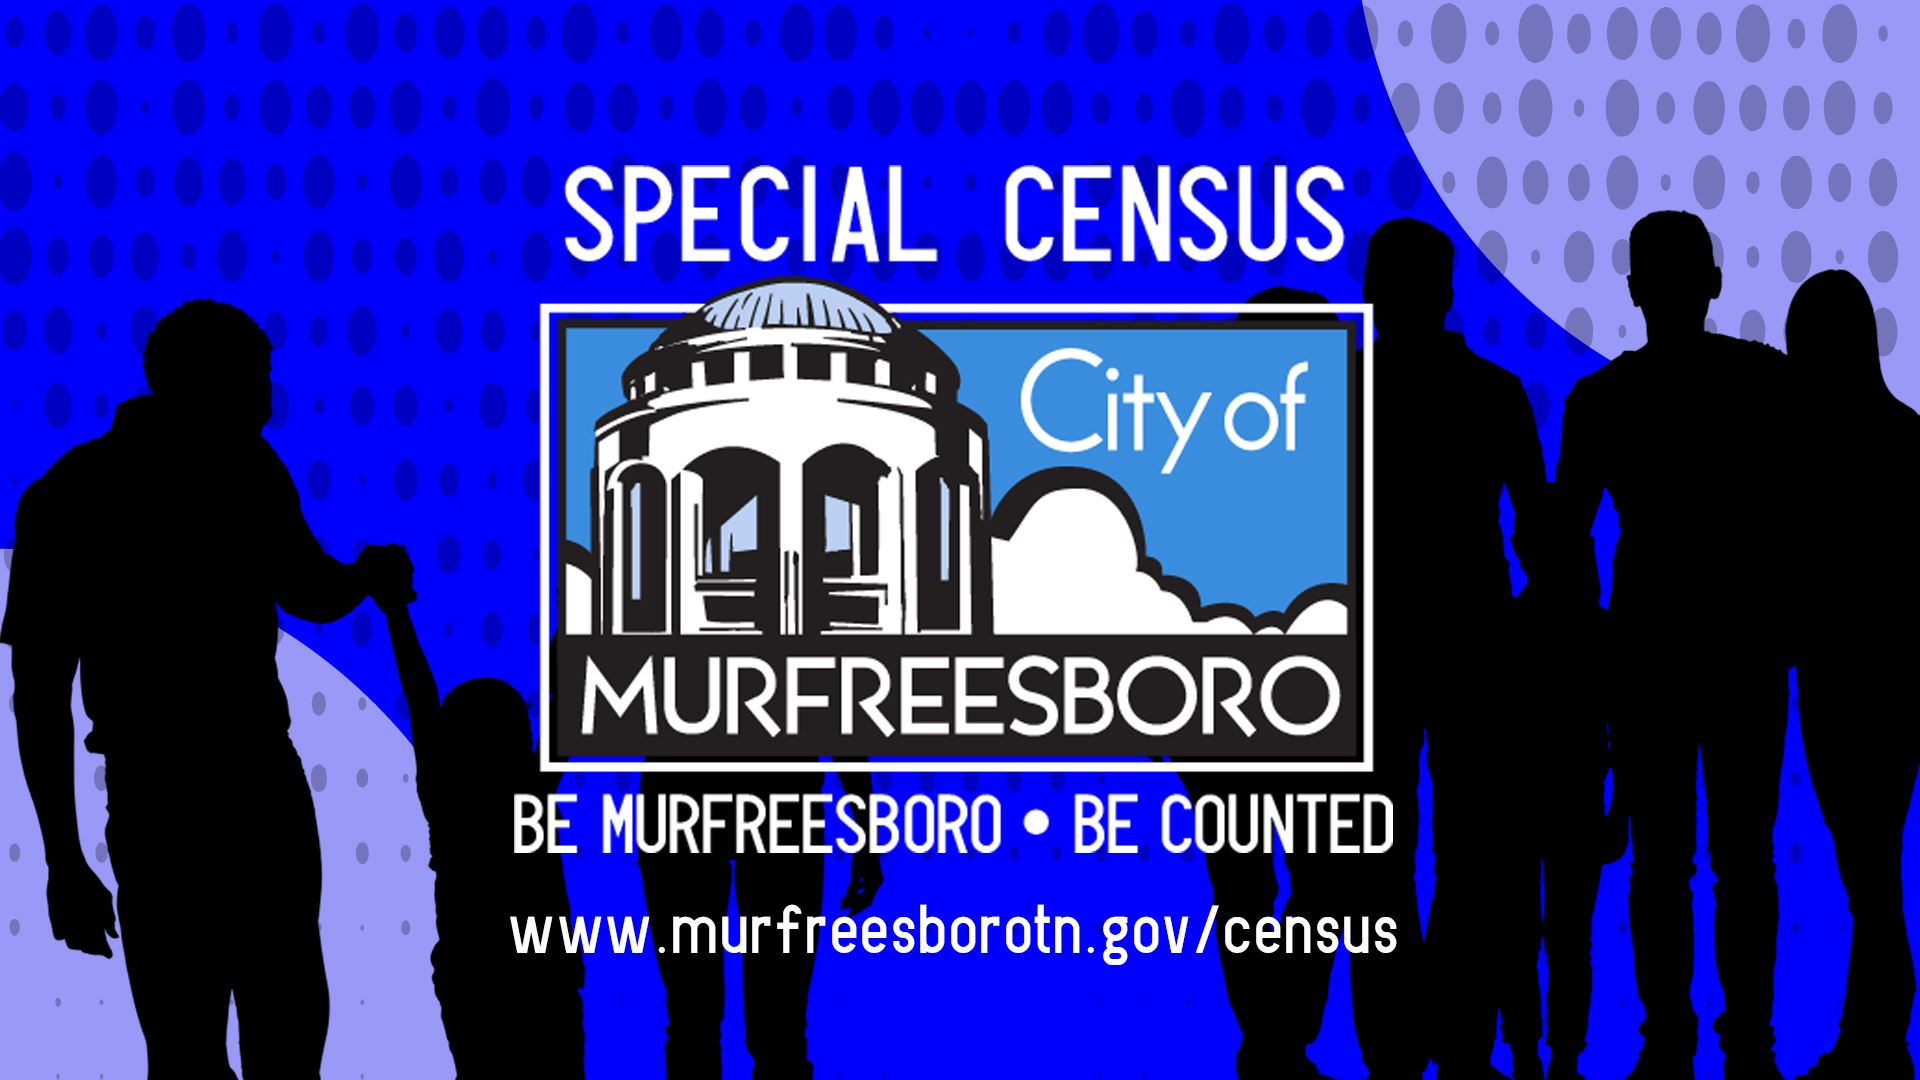 Special Census Background for Website Thumbnail (NEWSFLASH)